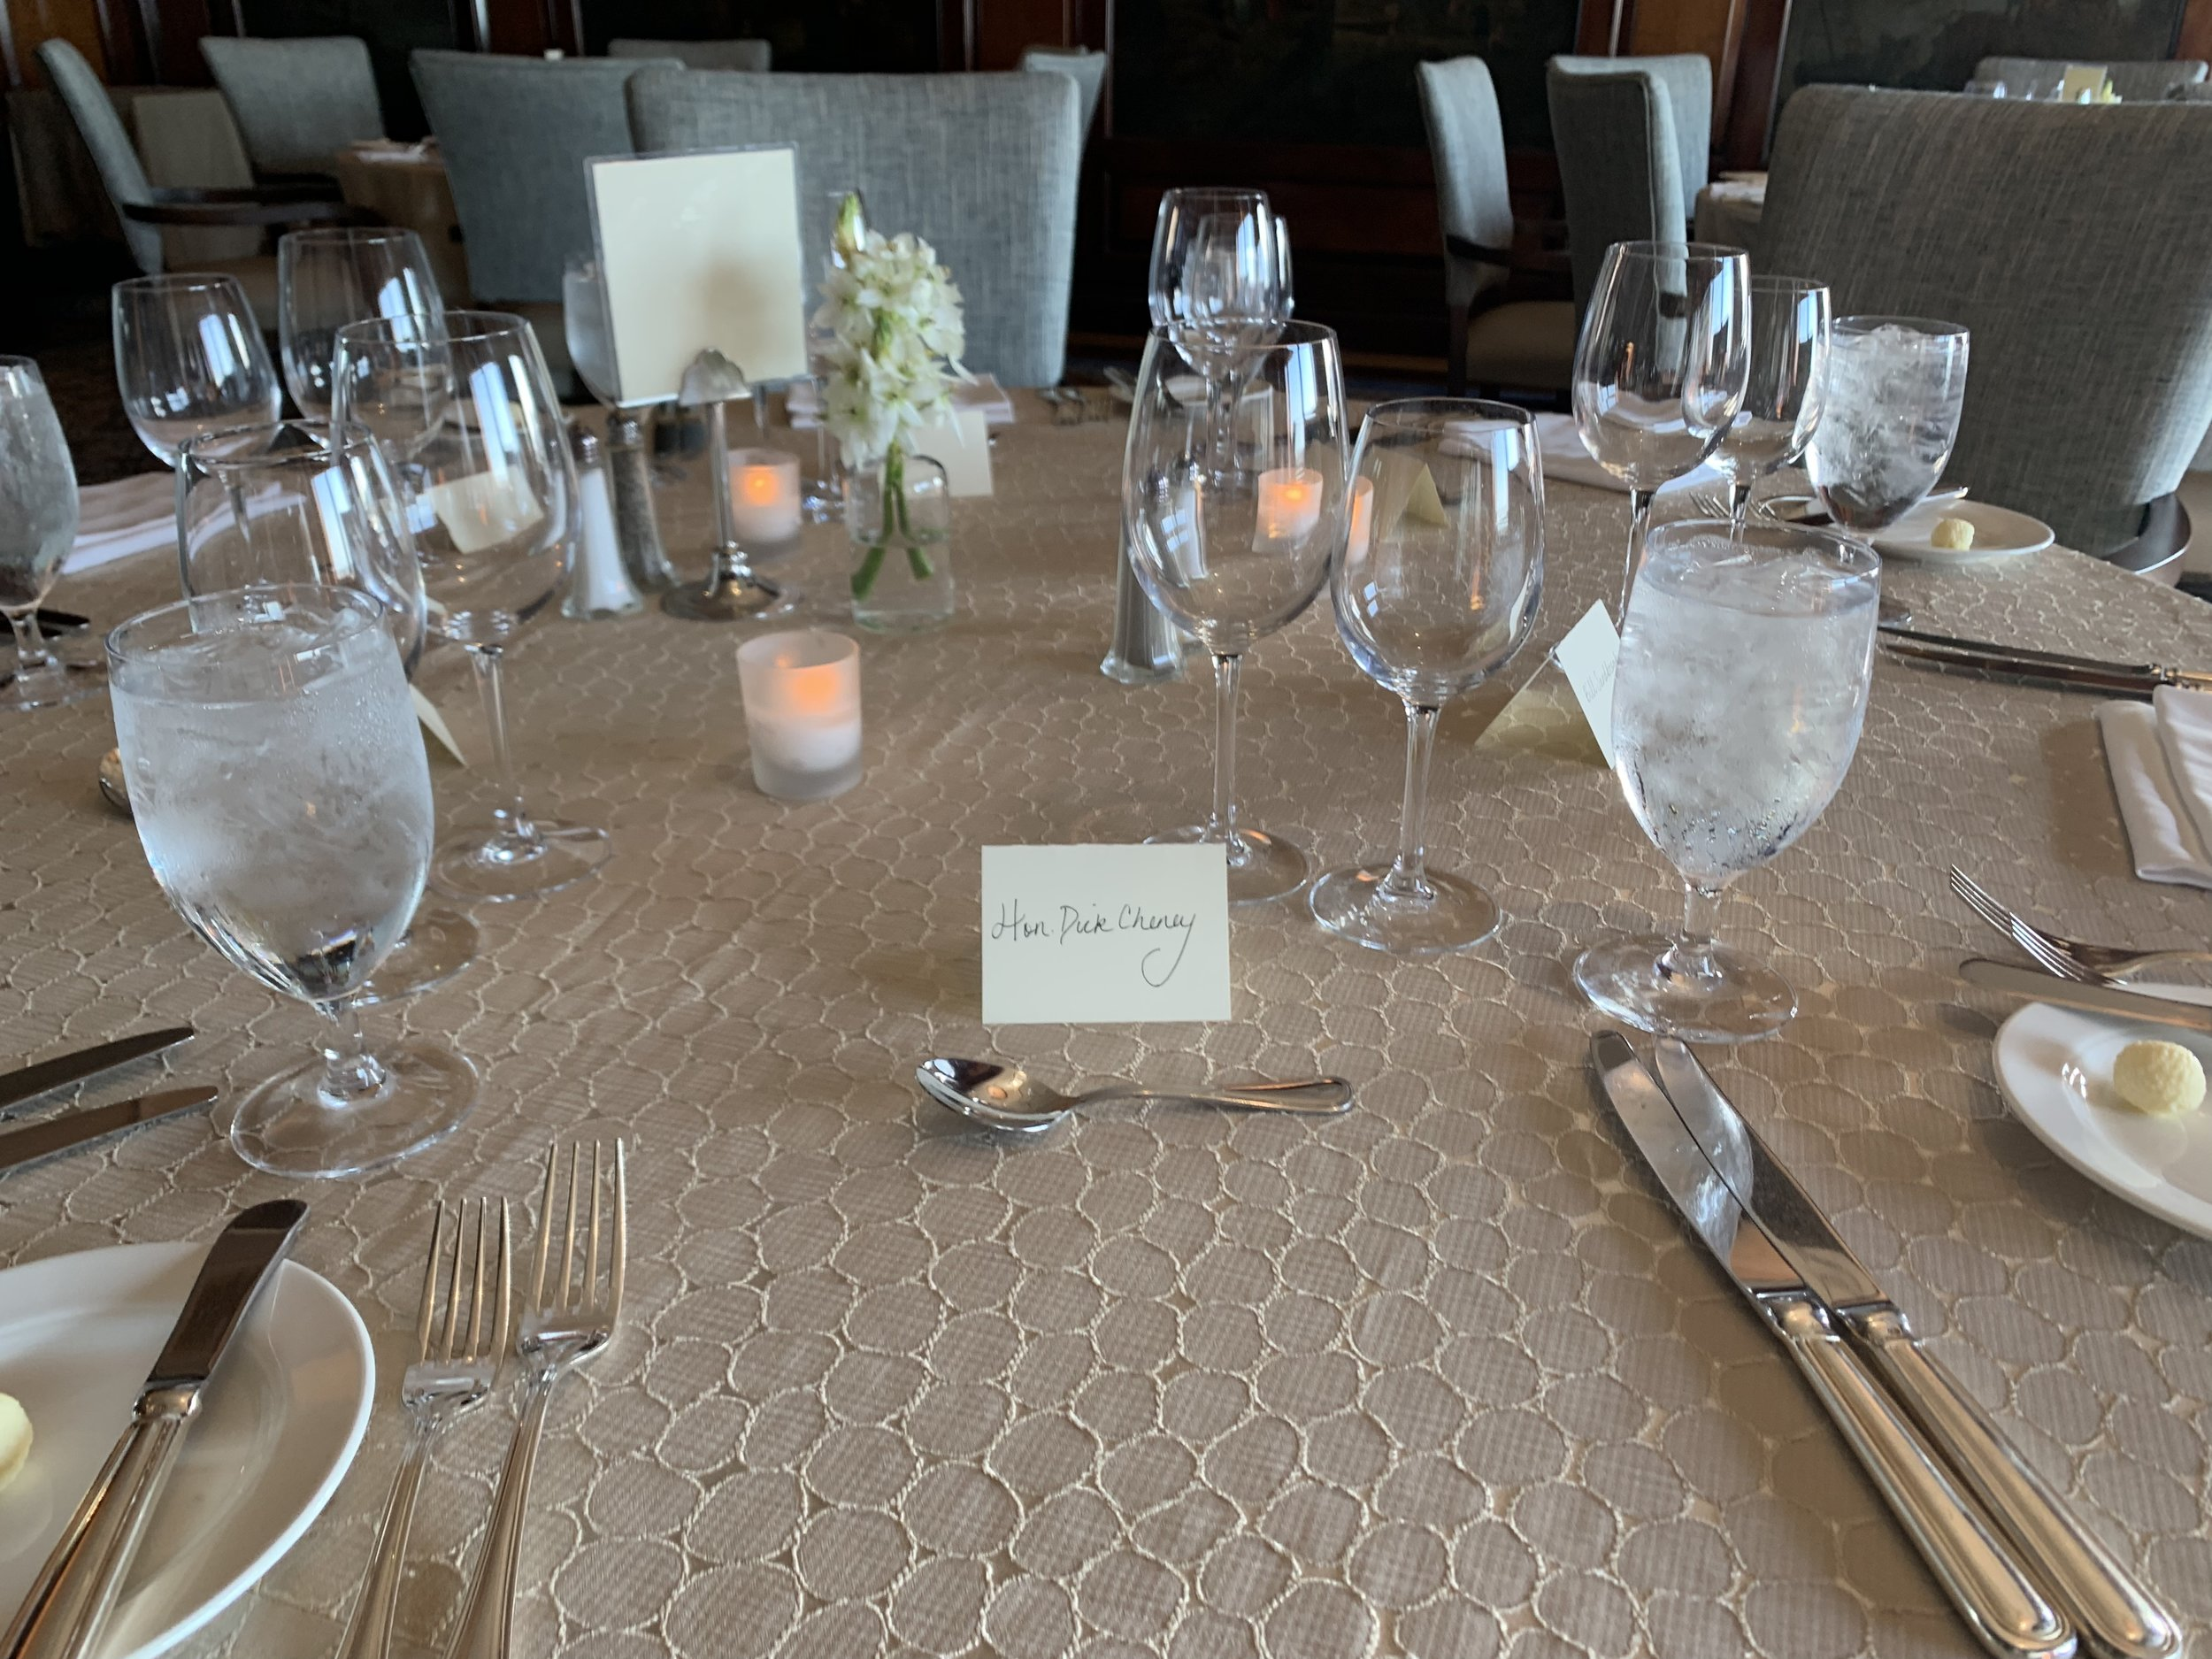 Table set in Dallas for a fundraising dinner supporting Liz Cheney for Wyoming with Vice President Dick Cheney in 2019.